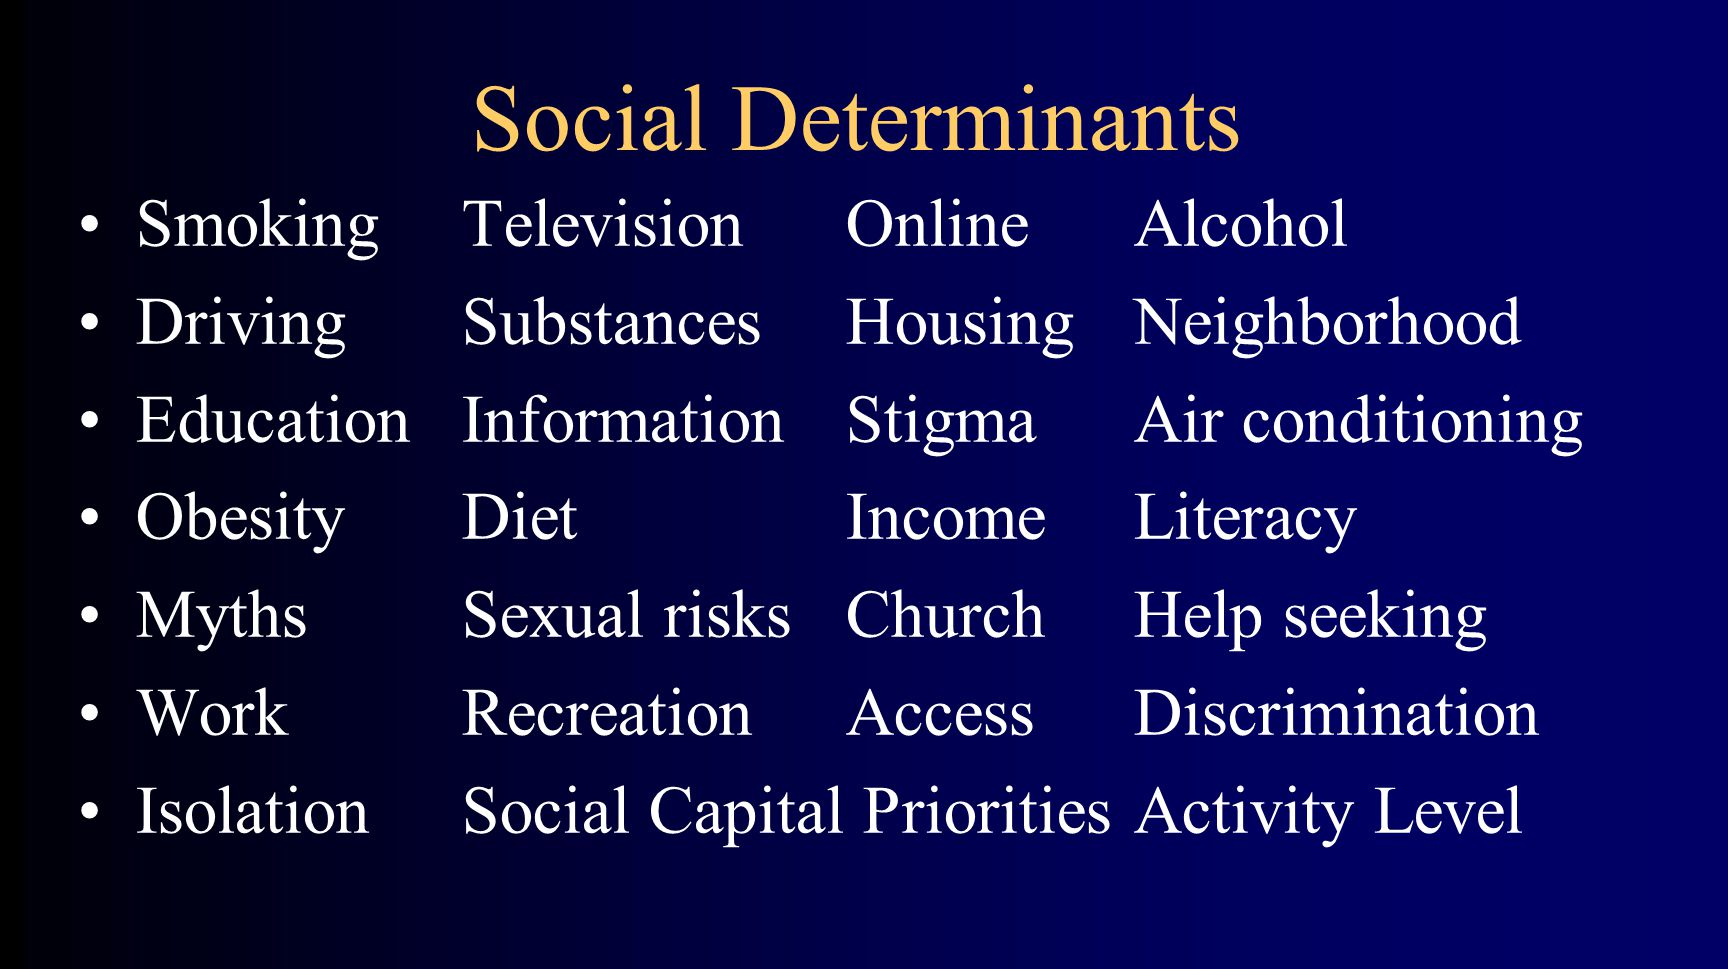 Social Determinants SmokingTelevisionOnlineAlcohol DrivingSubstancesHousingNeighborhood EducationInformationStigmaAir conditioning ObesityDietIncomeLiteracy MythsSexual risksChurchHelp seeking WorkRecreationAccessDiscrimination IsolationSocial Capital PrioritiesActivity Level